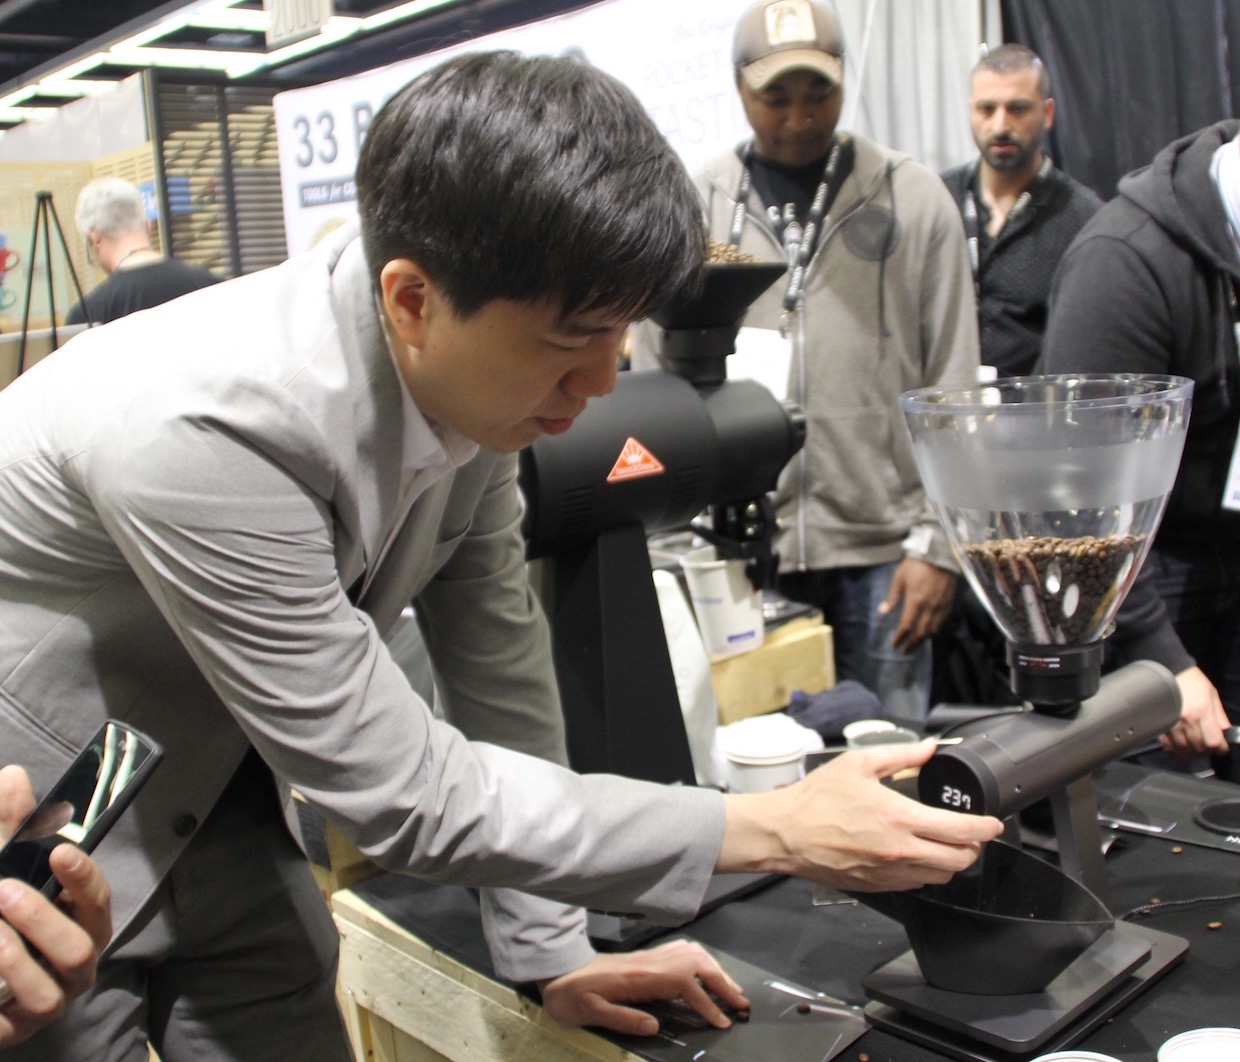 Acaia Co-Founder Rex Tseng. Daily Coffee News photo.